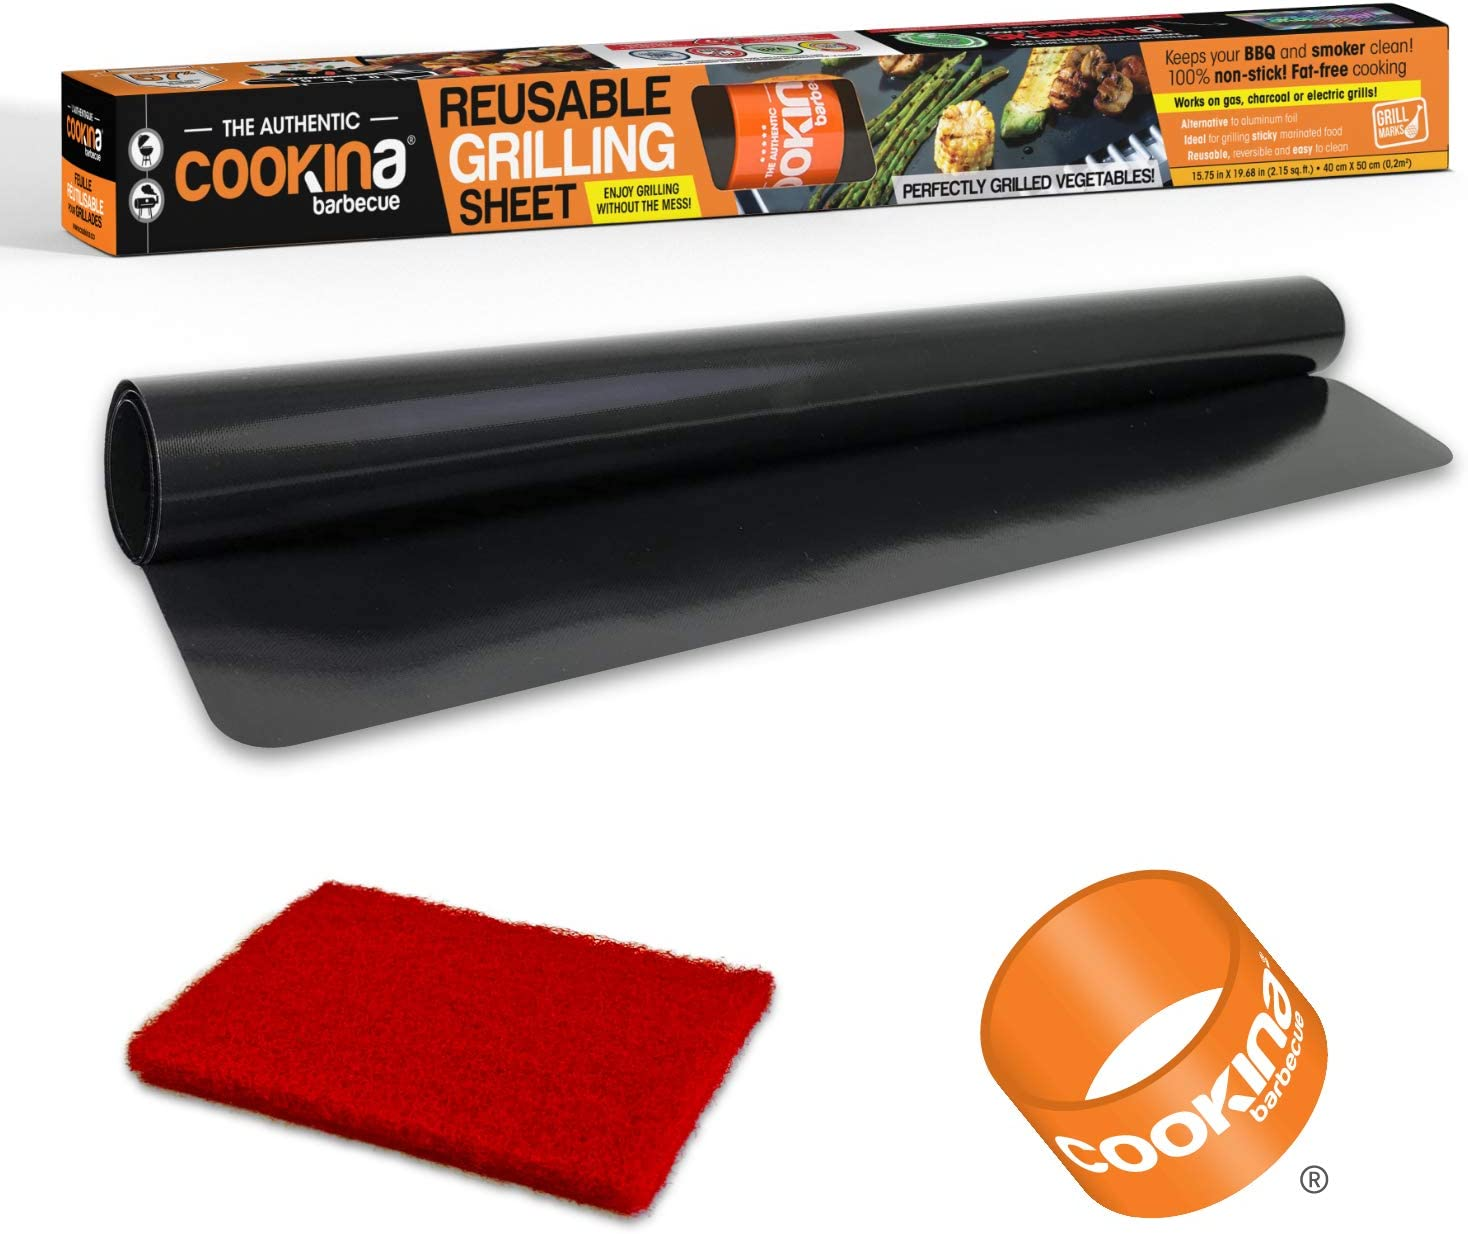 COOKINA BBQ Reusable Mat-100% Non-Stick, Easy to Clean Grilling Sheet for Smokers, as Well as Gas, Charcoal and Electric Barbecues, Single Pack, Black: Kitchen & Dining